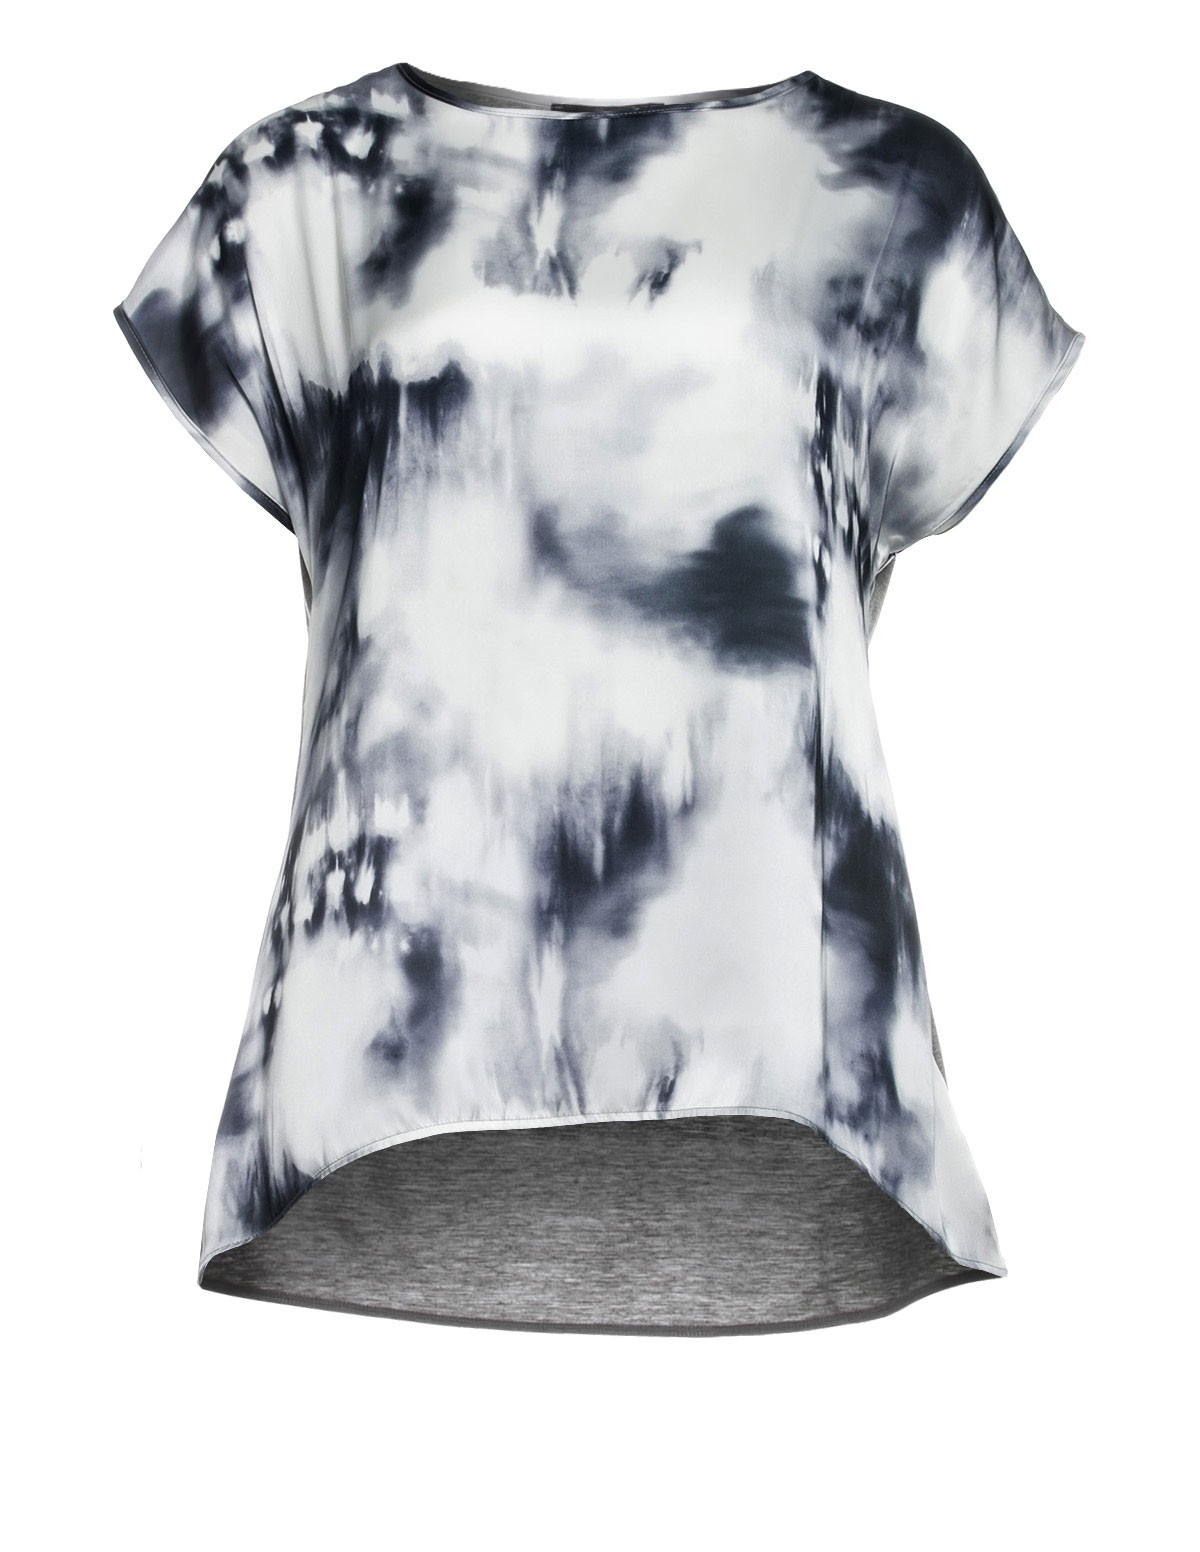 High-low tie-dye shirt